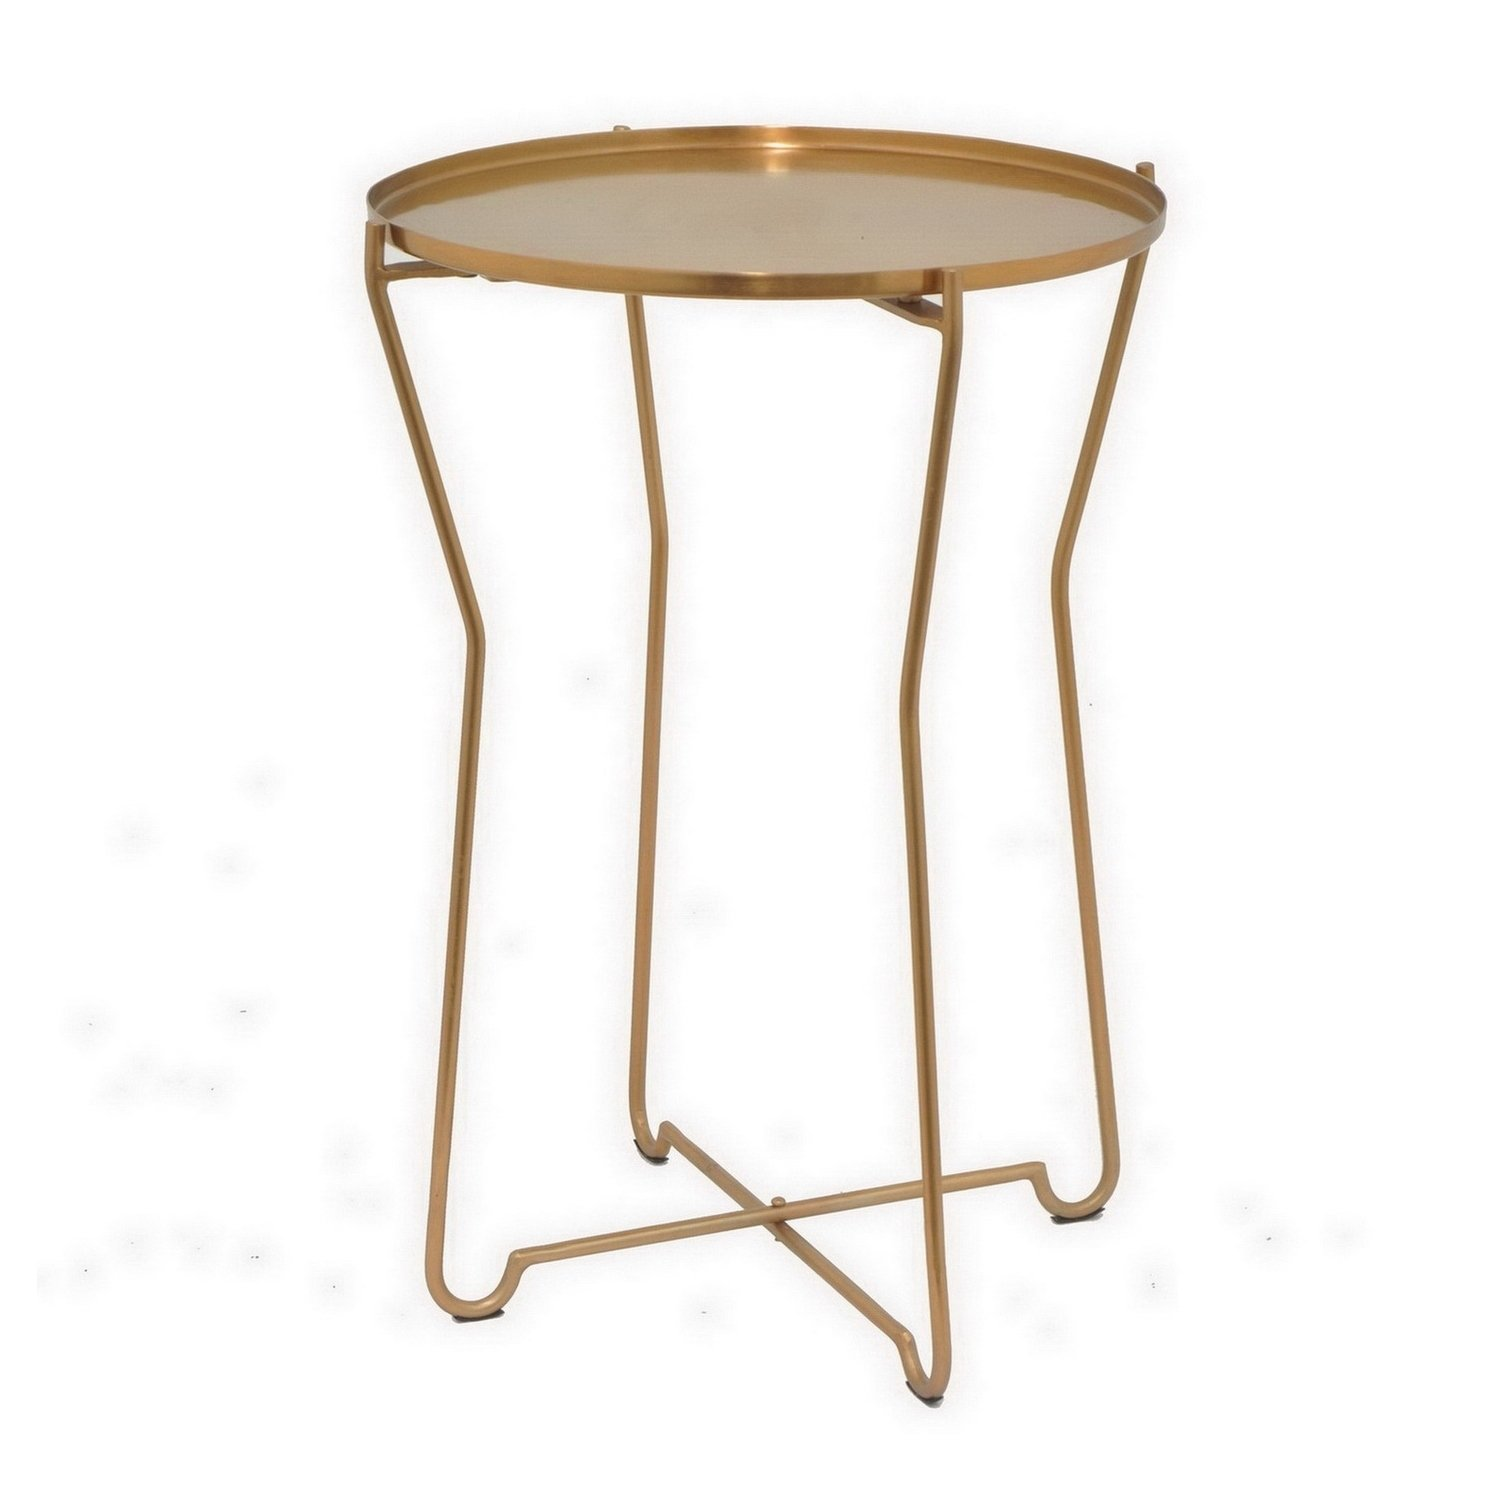 three hands round metal accent table bronze free shipping tables today small marble coffee upcycled patio sun shades pottery barn glass console modern top hooker end winchester